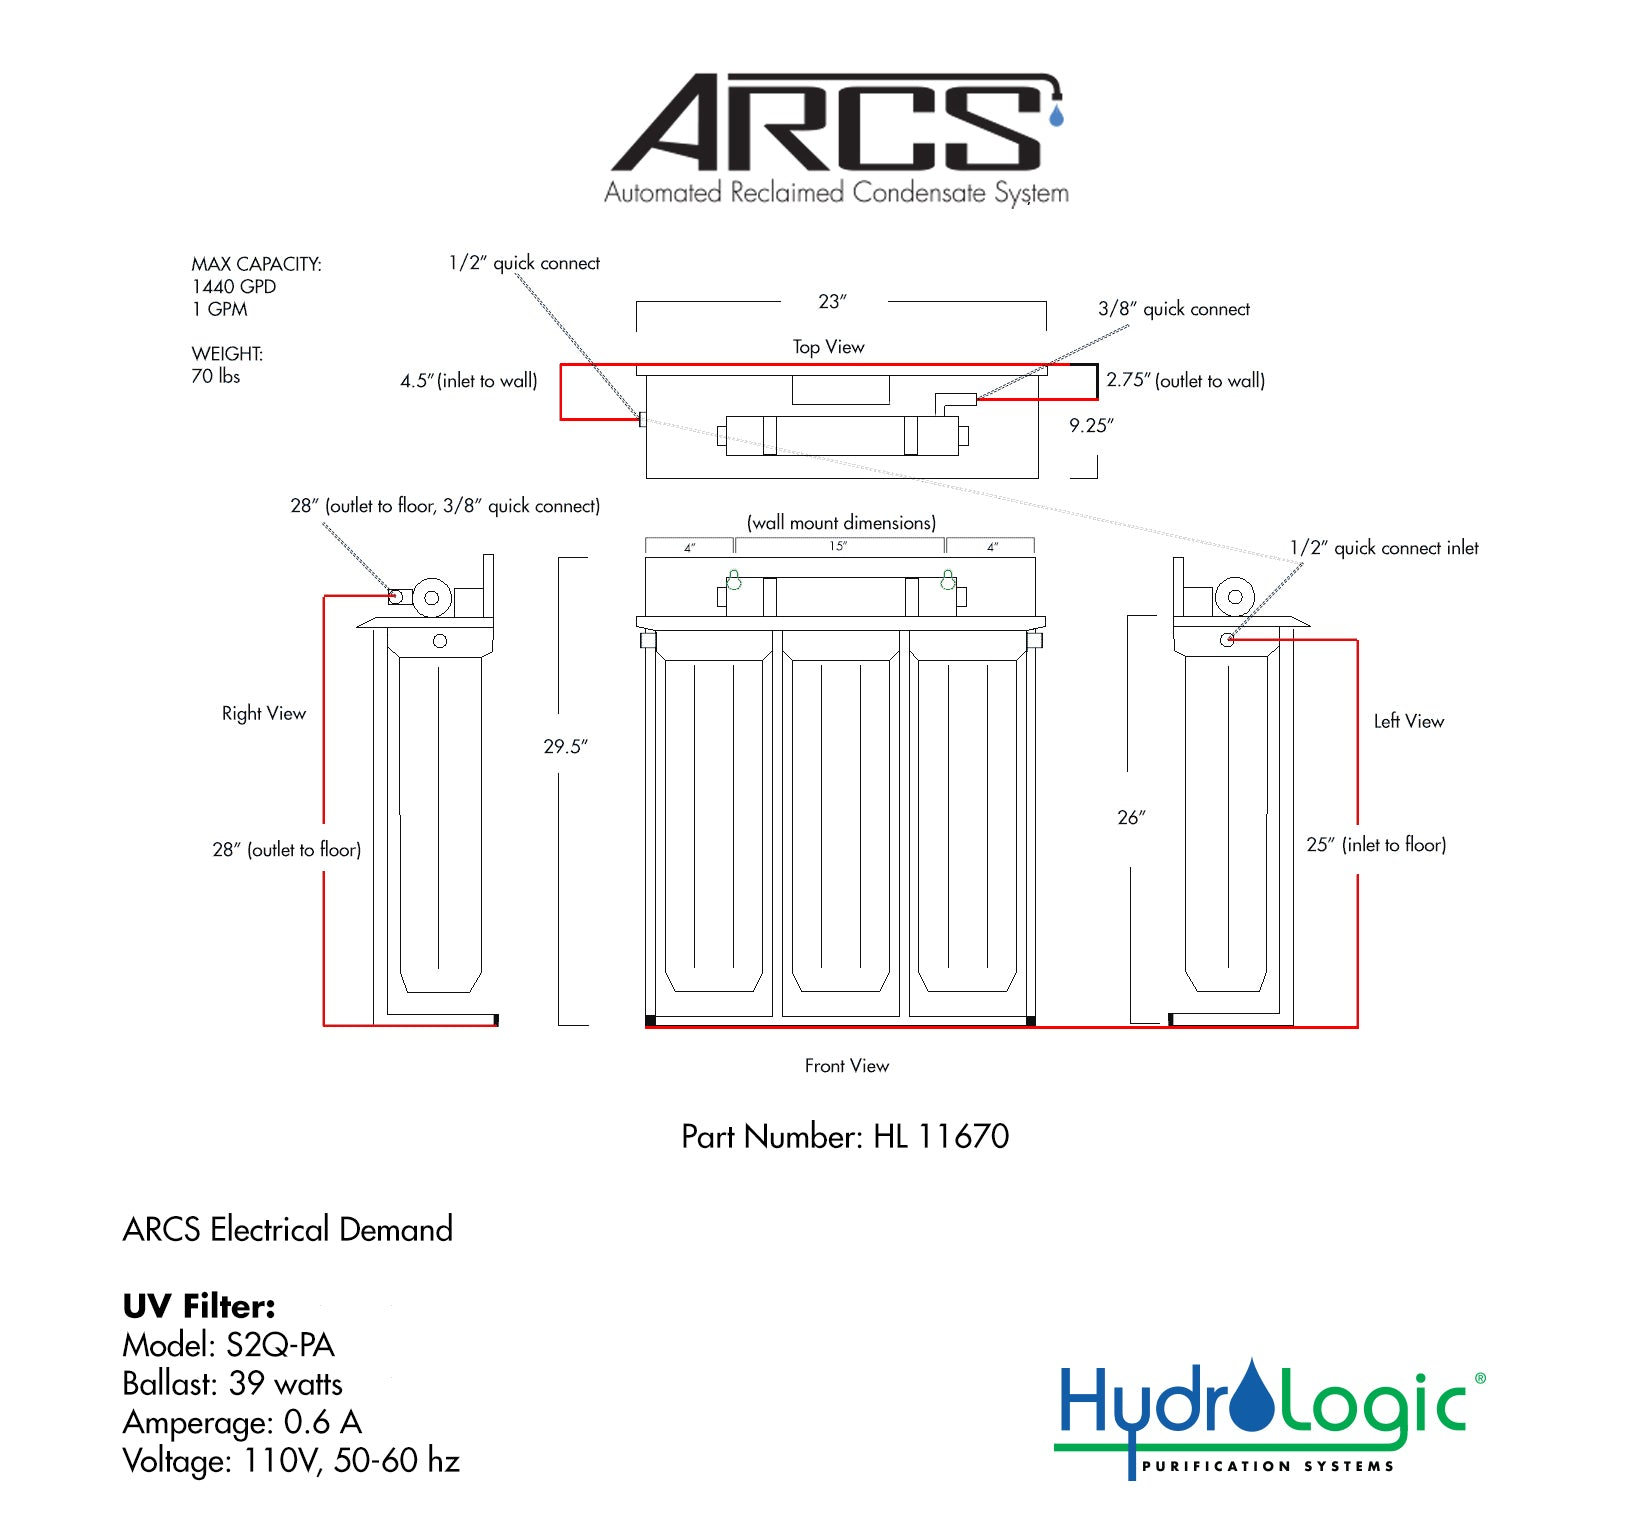 Automated Reclaimed Condensate System (ARCS) Cutsheet